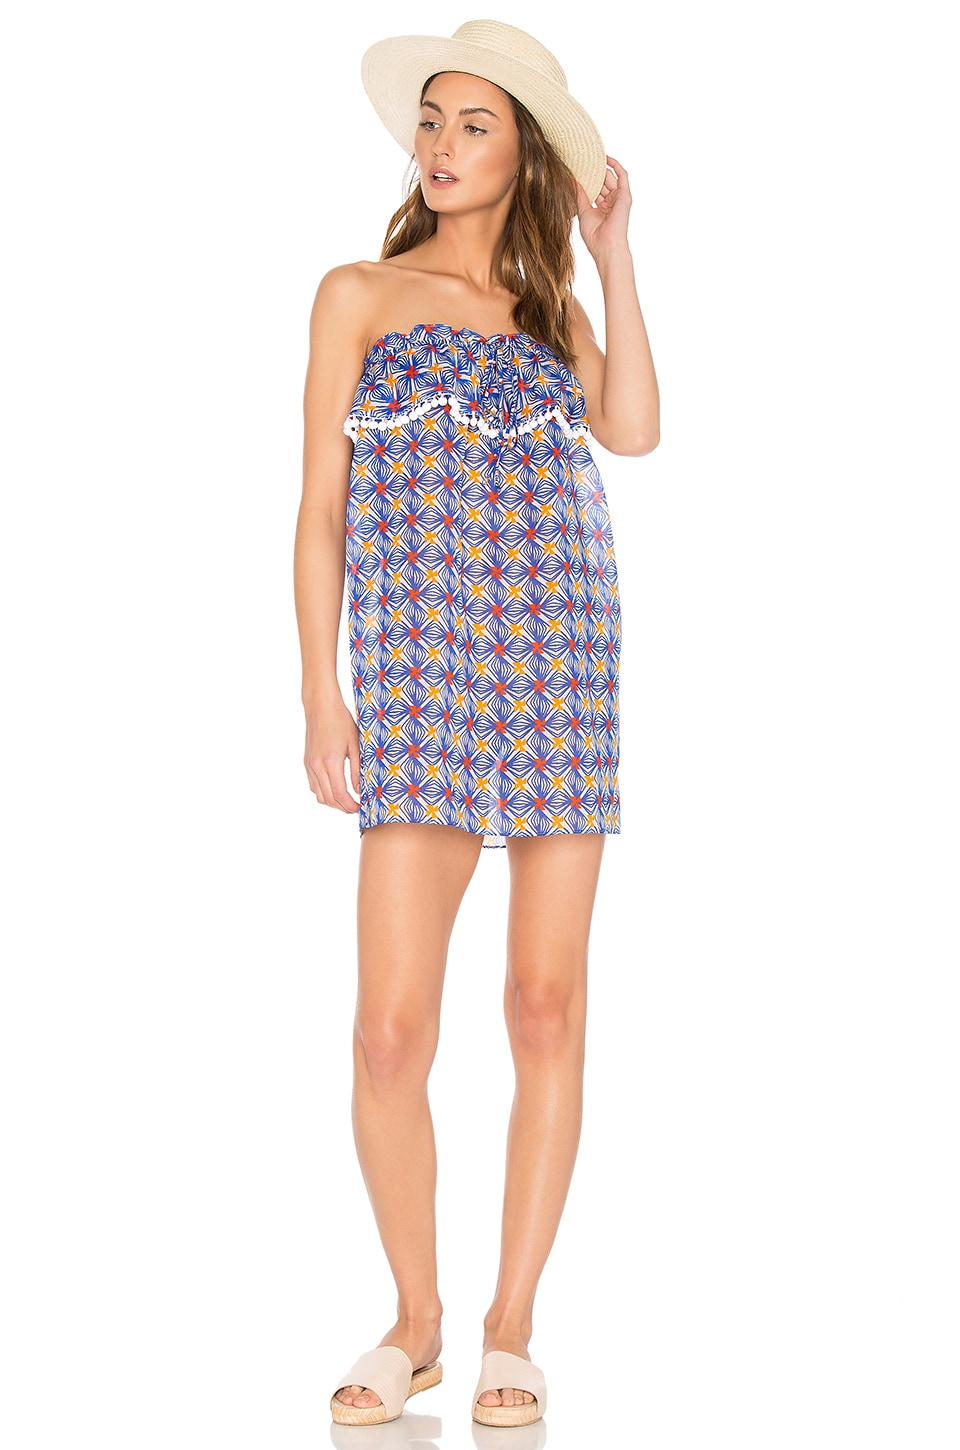 Anguilla Ruffled Strapless Dress by MILLY